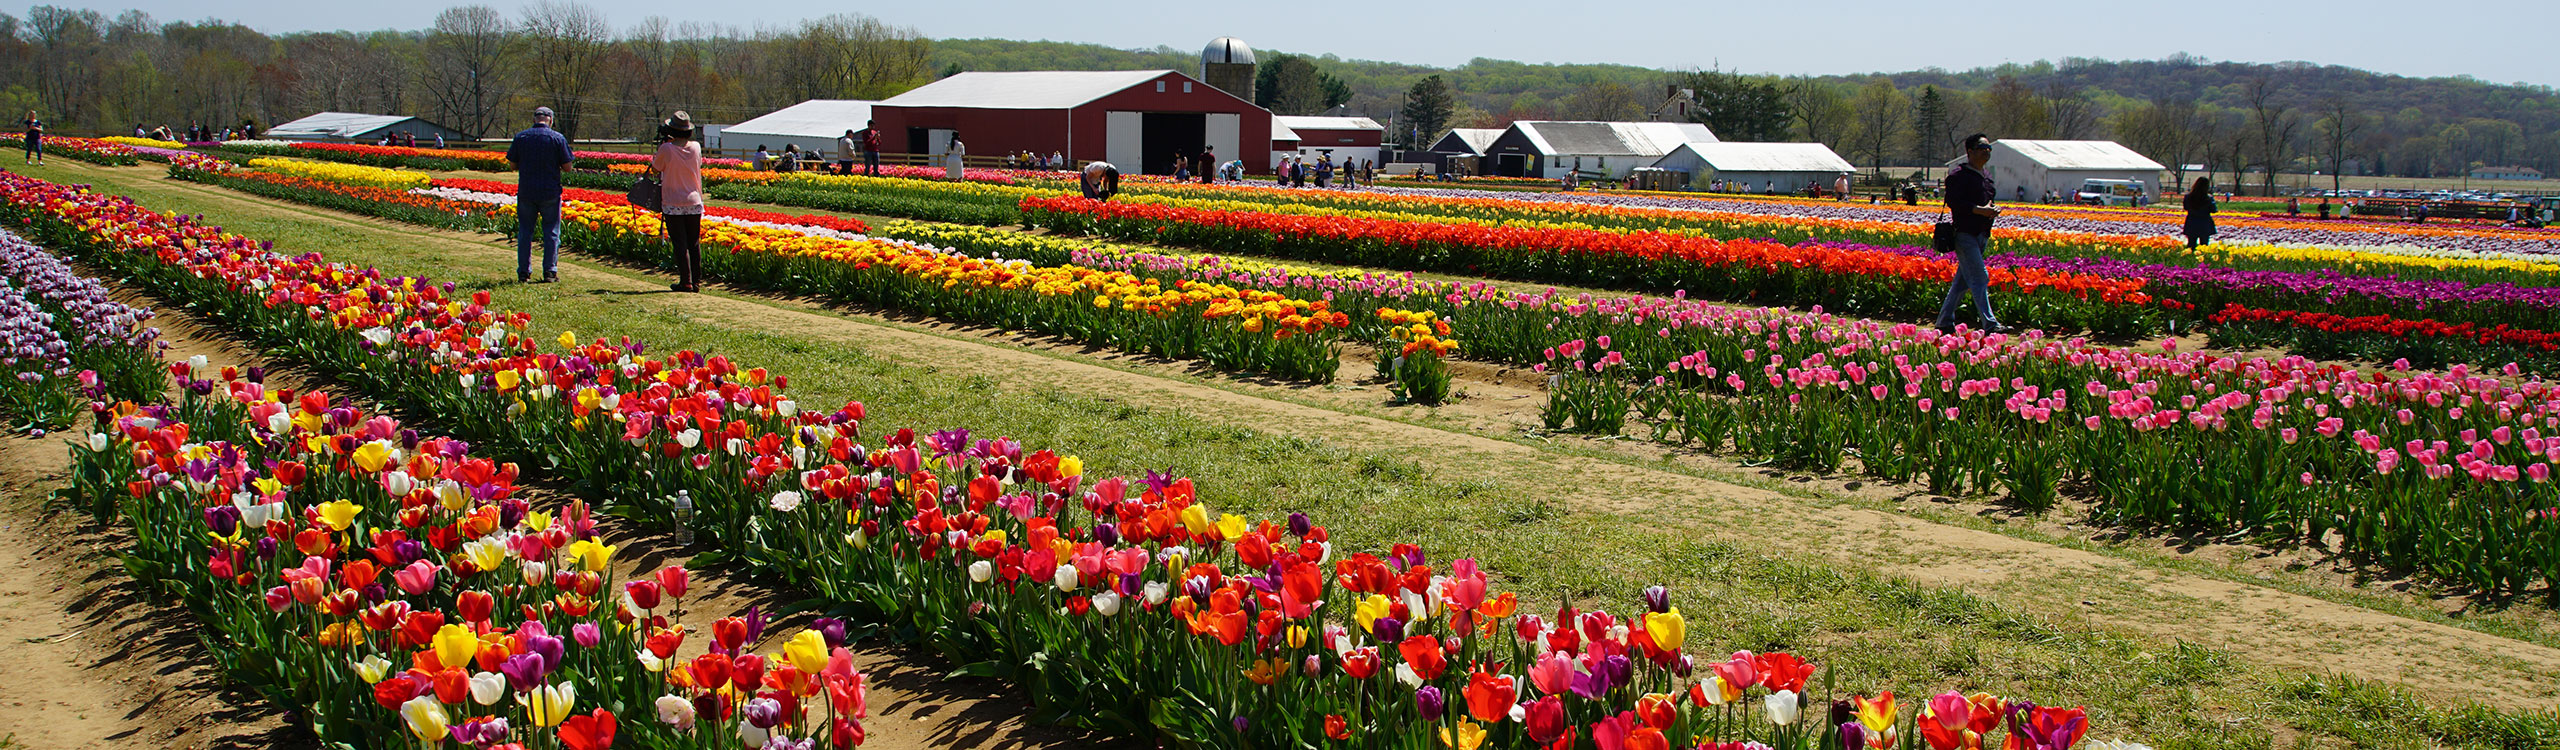 Garden State in Bloom - Holland Ridge Farms Tulip Festival